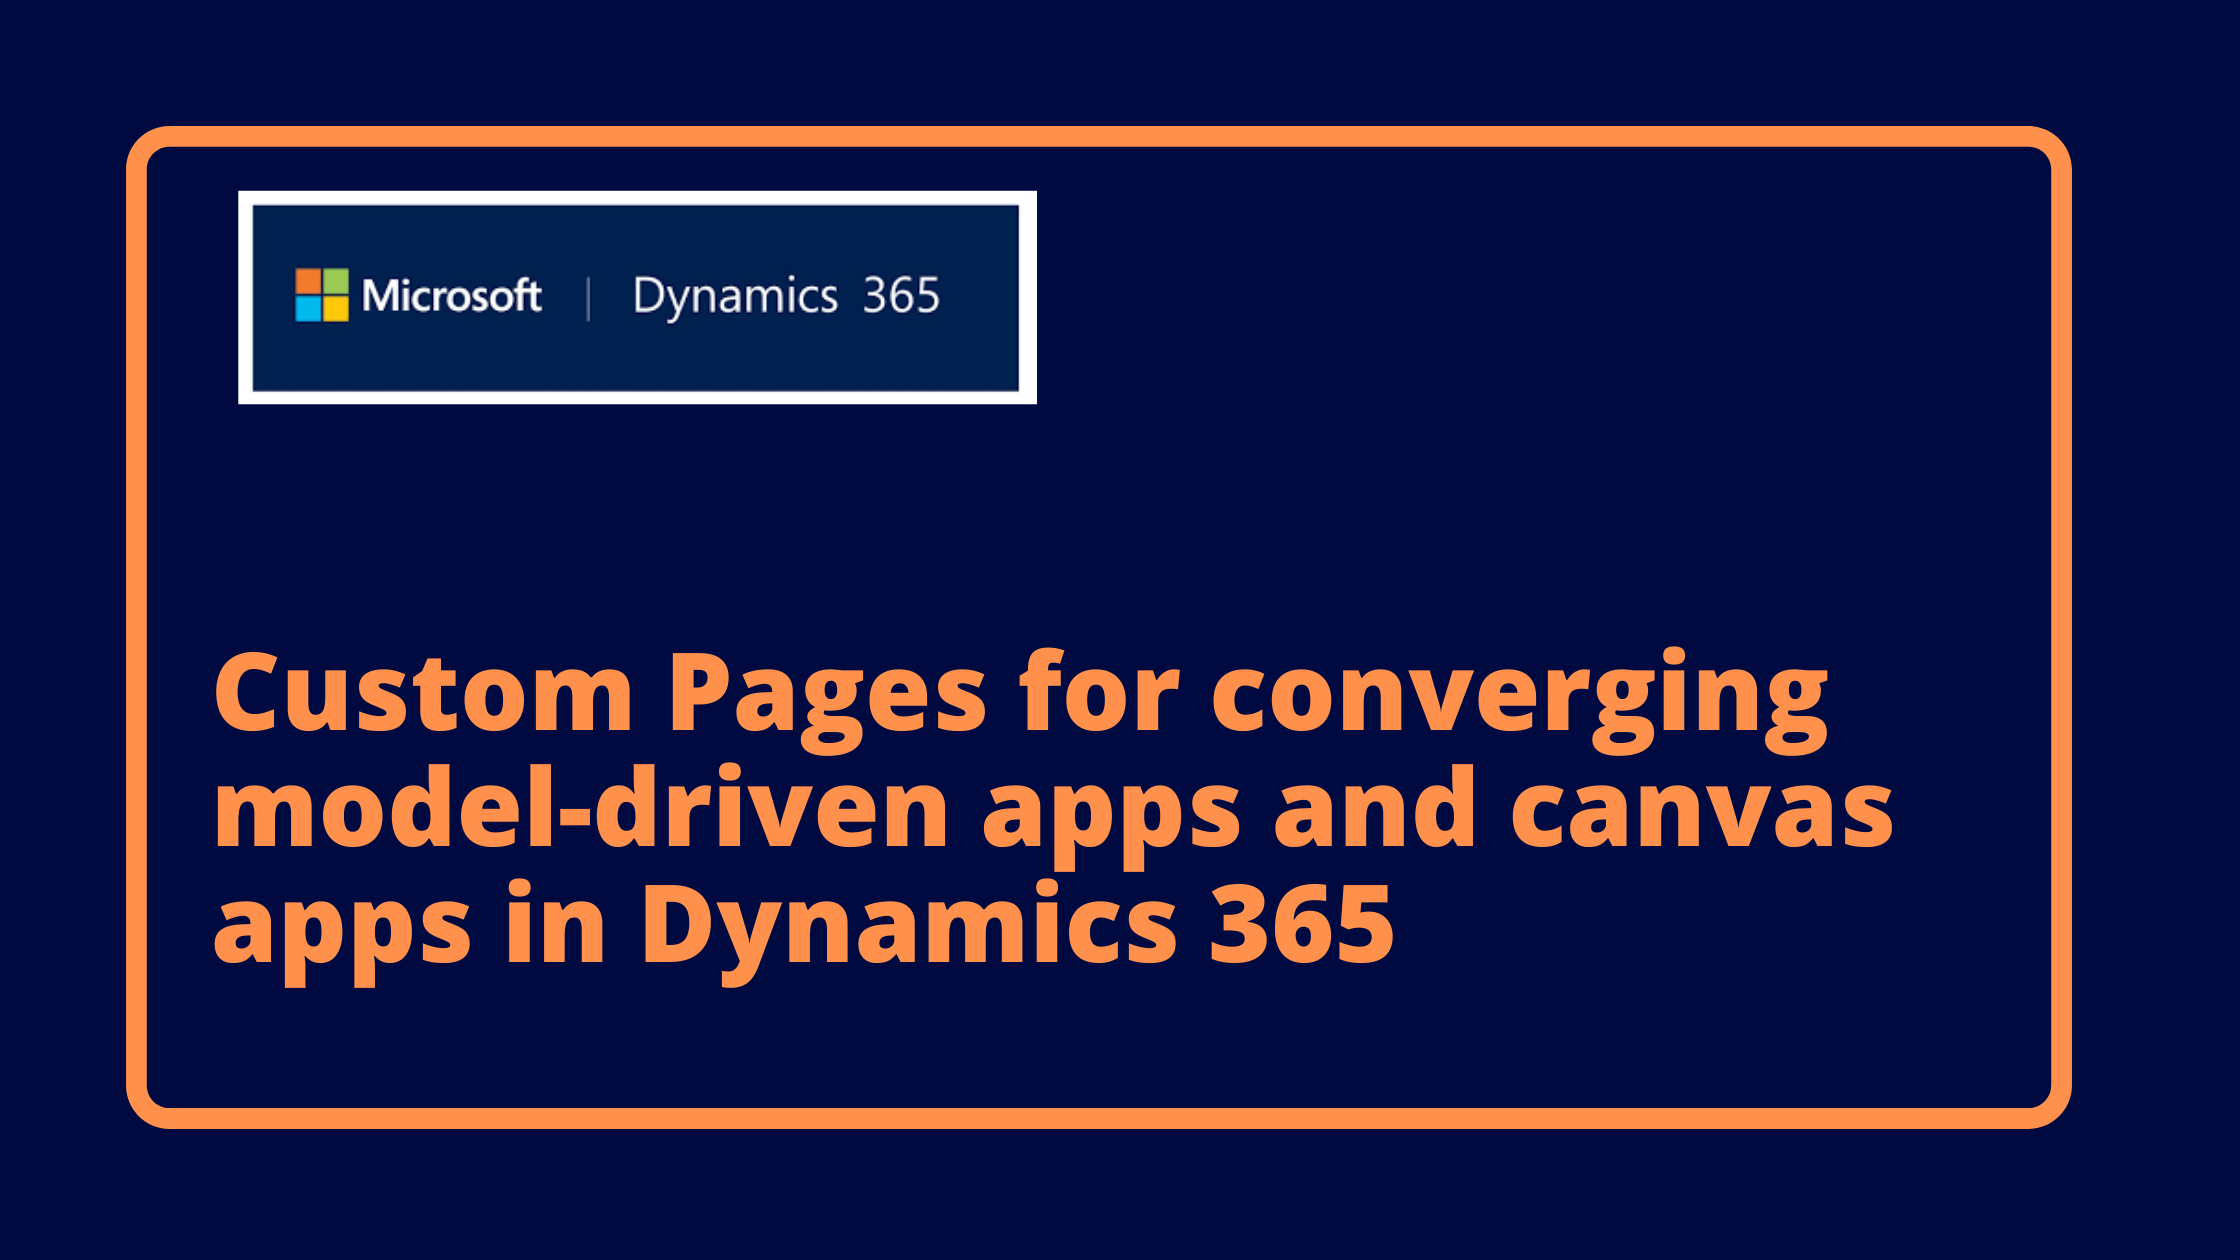 Custom Pages for converging model-driven apps and canvas apps in Dynamics 365